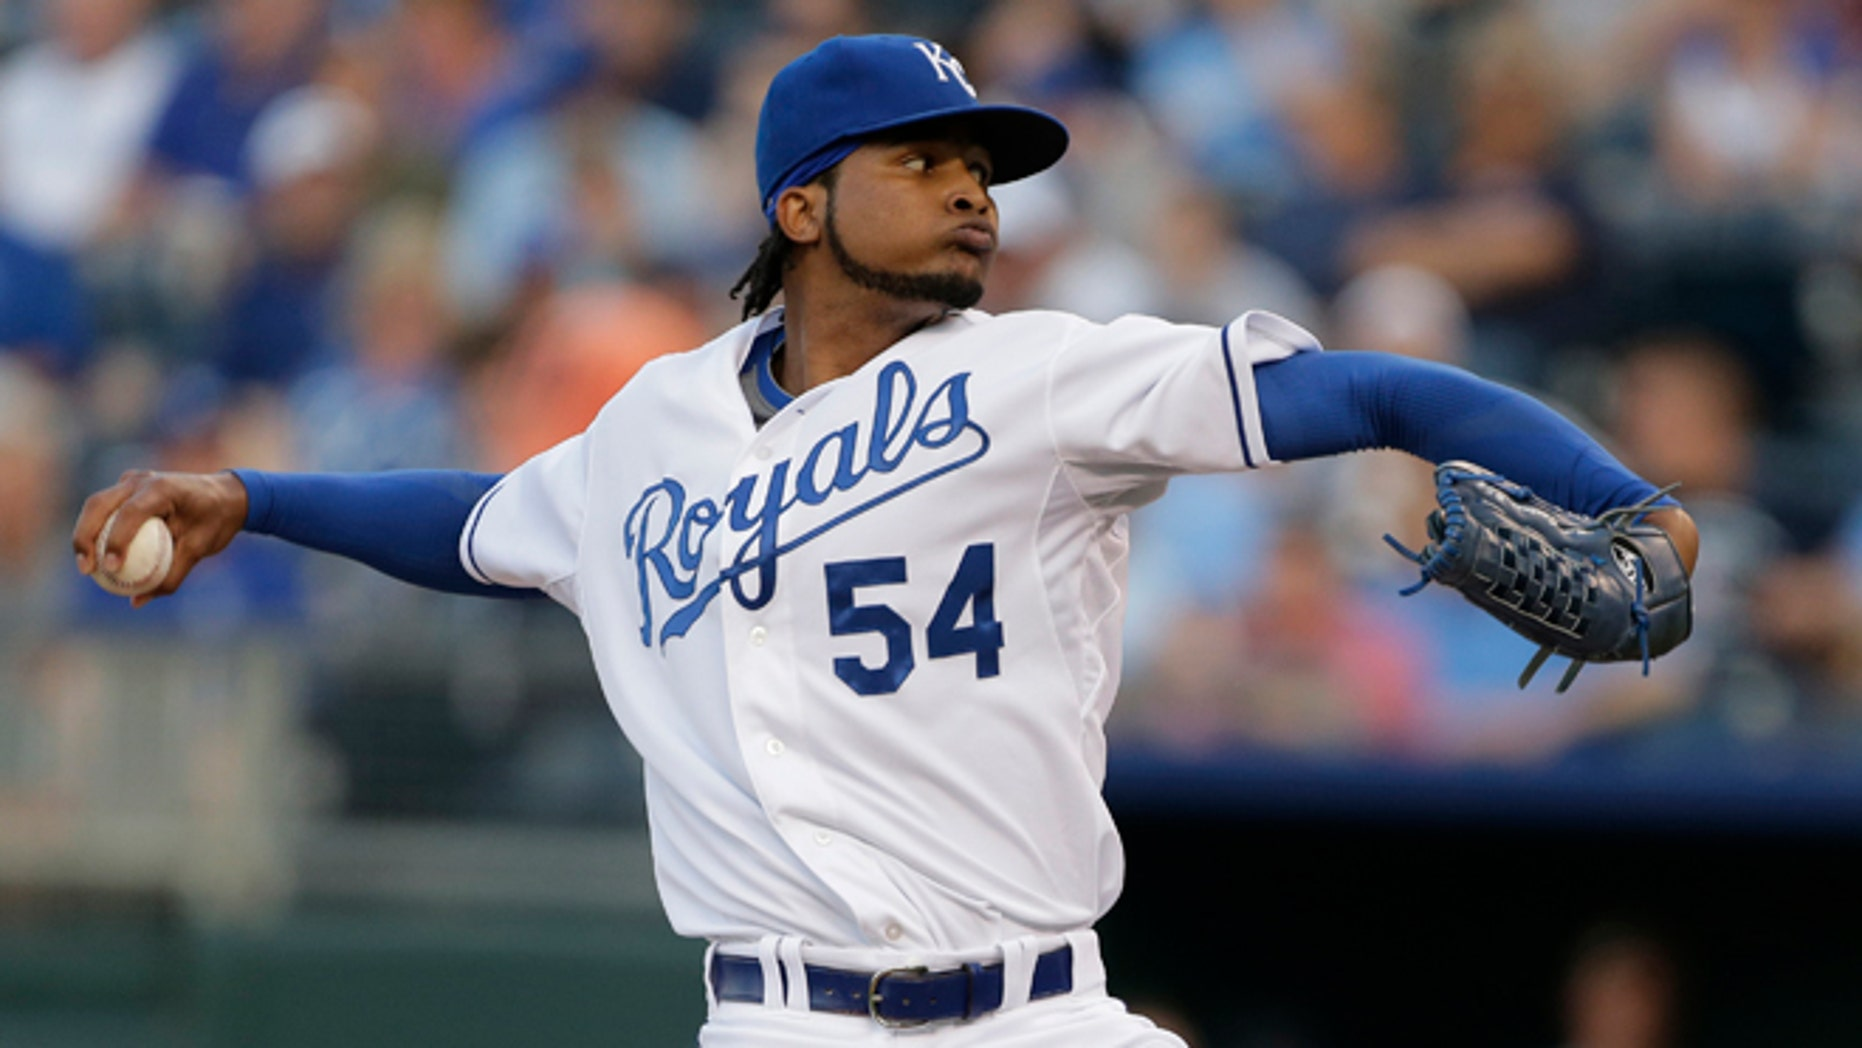 FILE - In this Aug. 20, 2013 file photo, Kansas City Royals starting pitcher Ervin Santana throws during the first inning of a baseball game against the Chicago White Sox, in Kansas City, Mo. The Atlanta Braves have signed Santana to bolster their injury plagued starting rotation. The team announced Wednesday, March 12, 2014, that Santana agreed to a one-year deal. (AP Photo/Charlie Riedel, File)